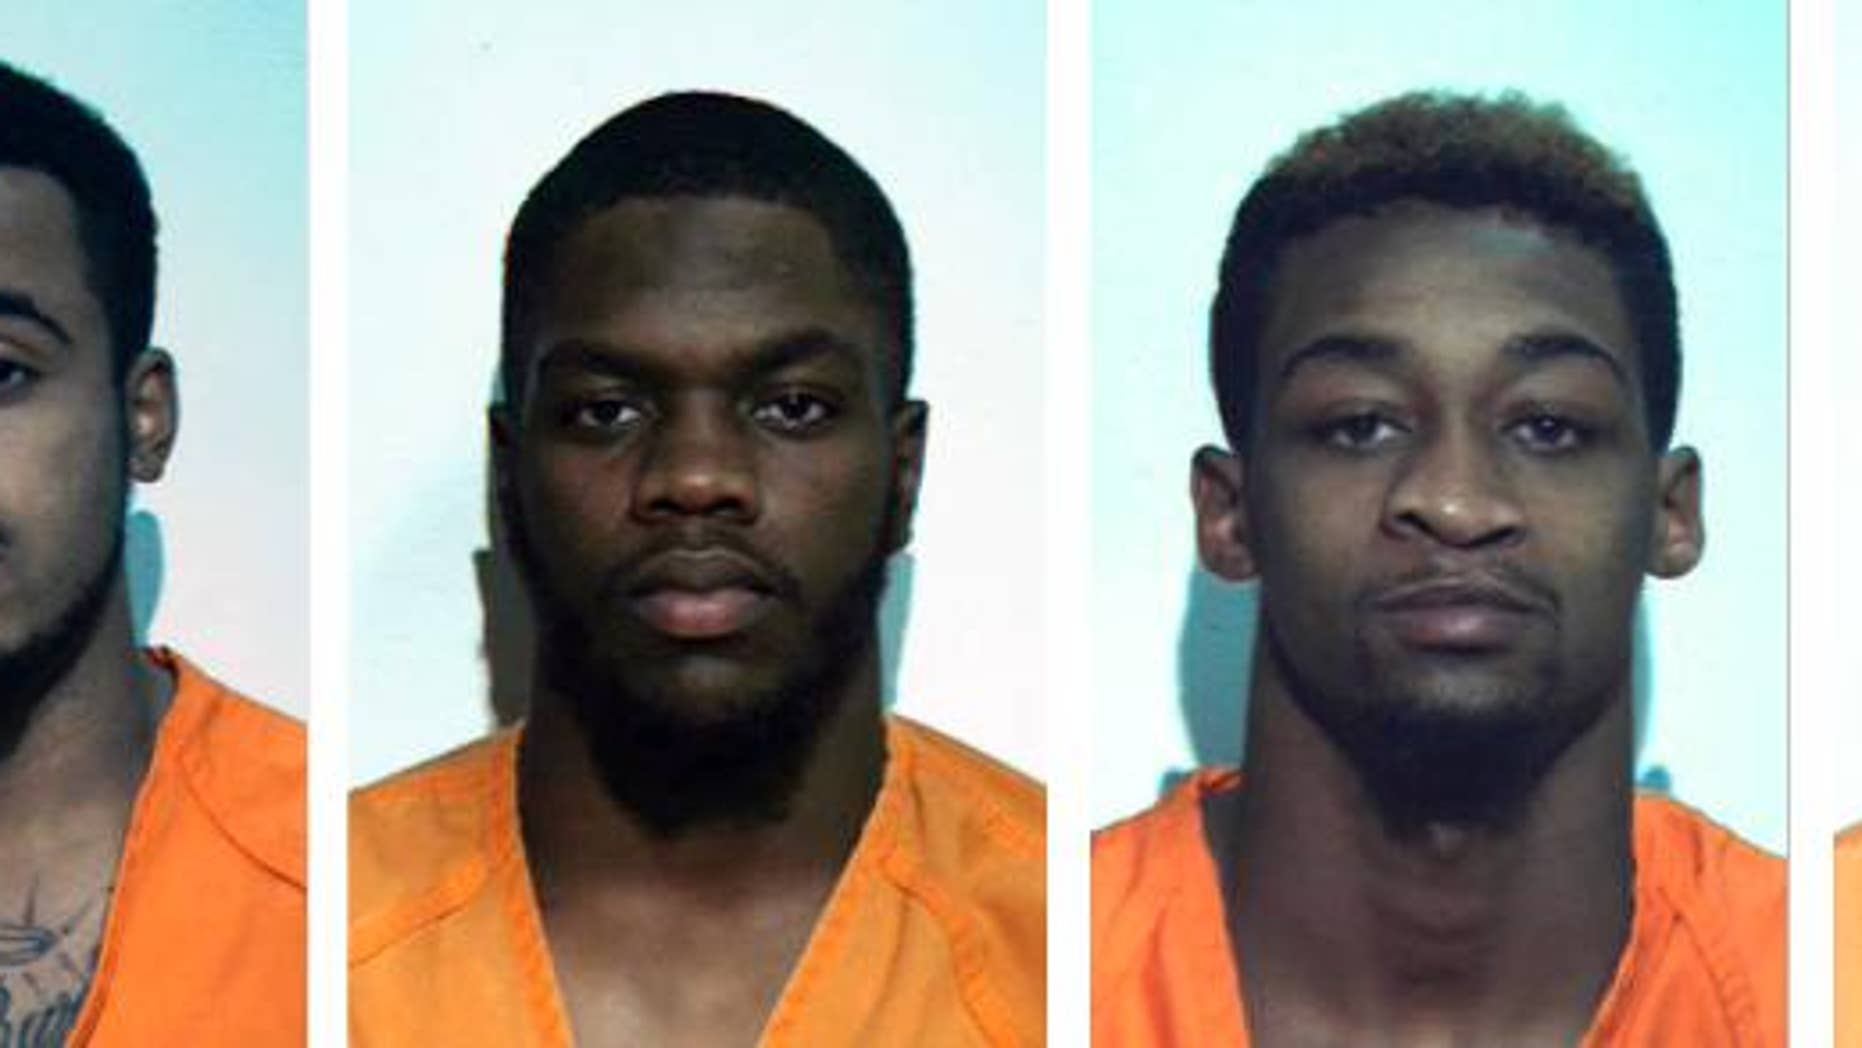 """These undated photos provided by the Washington County, Pa. correctional facilty show, from left, Jonathan Barlow, D'Andre Dunkley, Corey Ford, Rodney Gillin Jr. and James Williamson. The five football players from the California University of Pennsylvania, in California, Pa.,  were arrrested and suspended from the school after police say they beat and stomped a man outside an off-campus restaurant, then fled yelling """"Football strong!"""" The victim was in intensive care Friday, Oct. 31, 2014, with severe brain trauma. (AP Photo/Washington County, Pa. Correctional Facility)"""